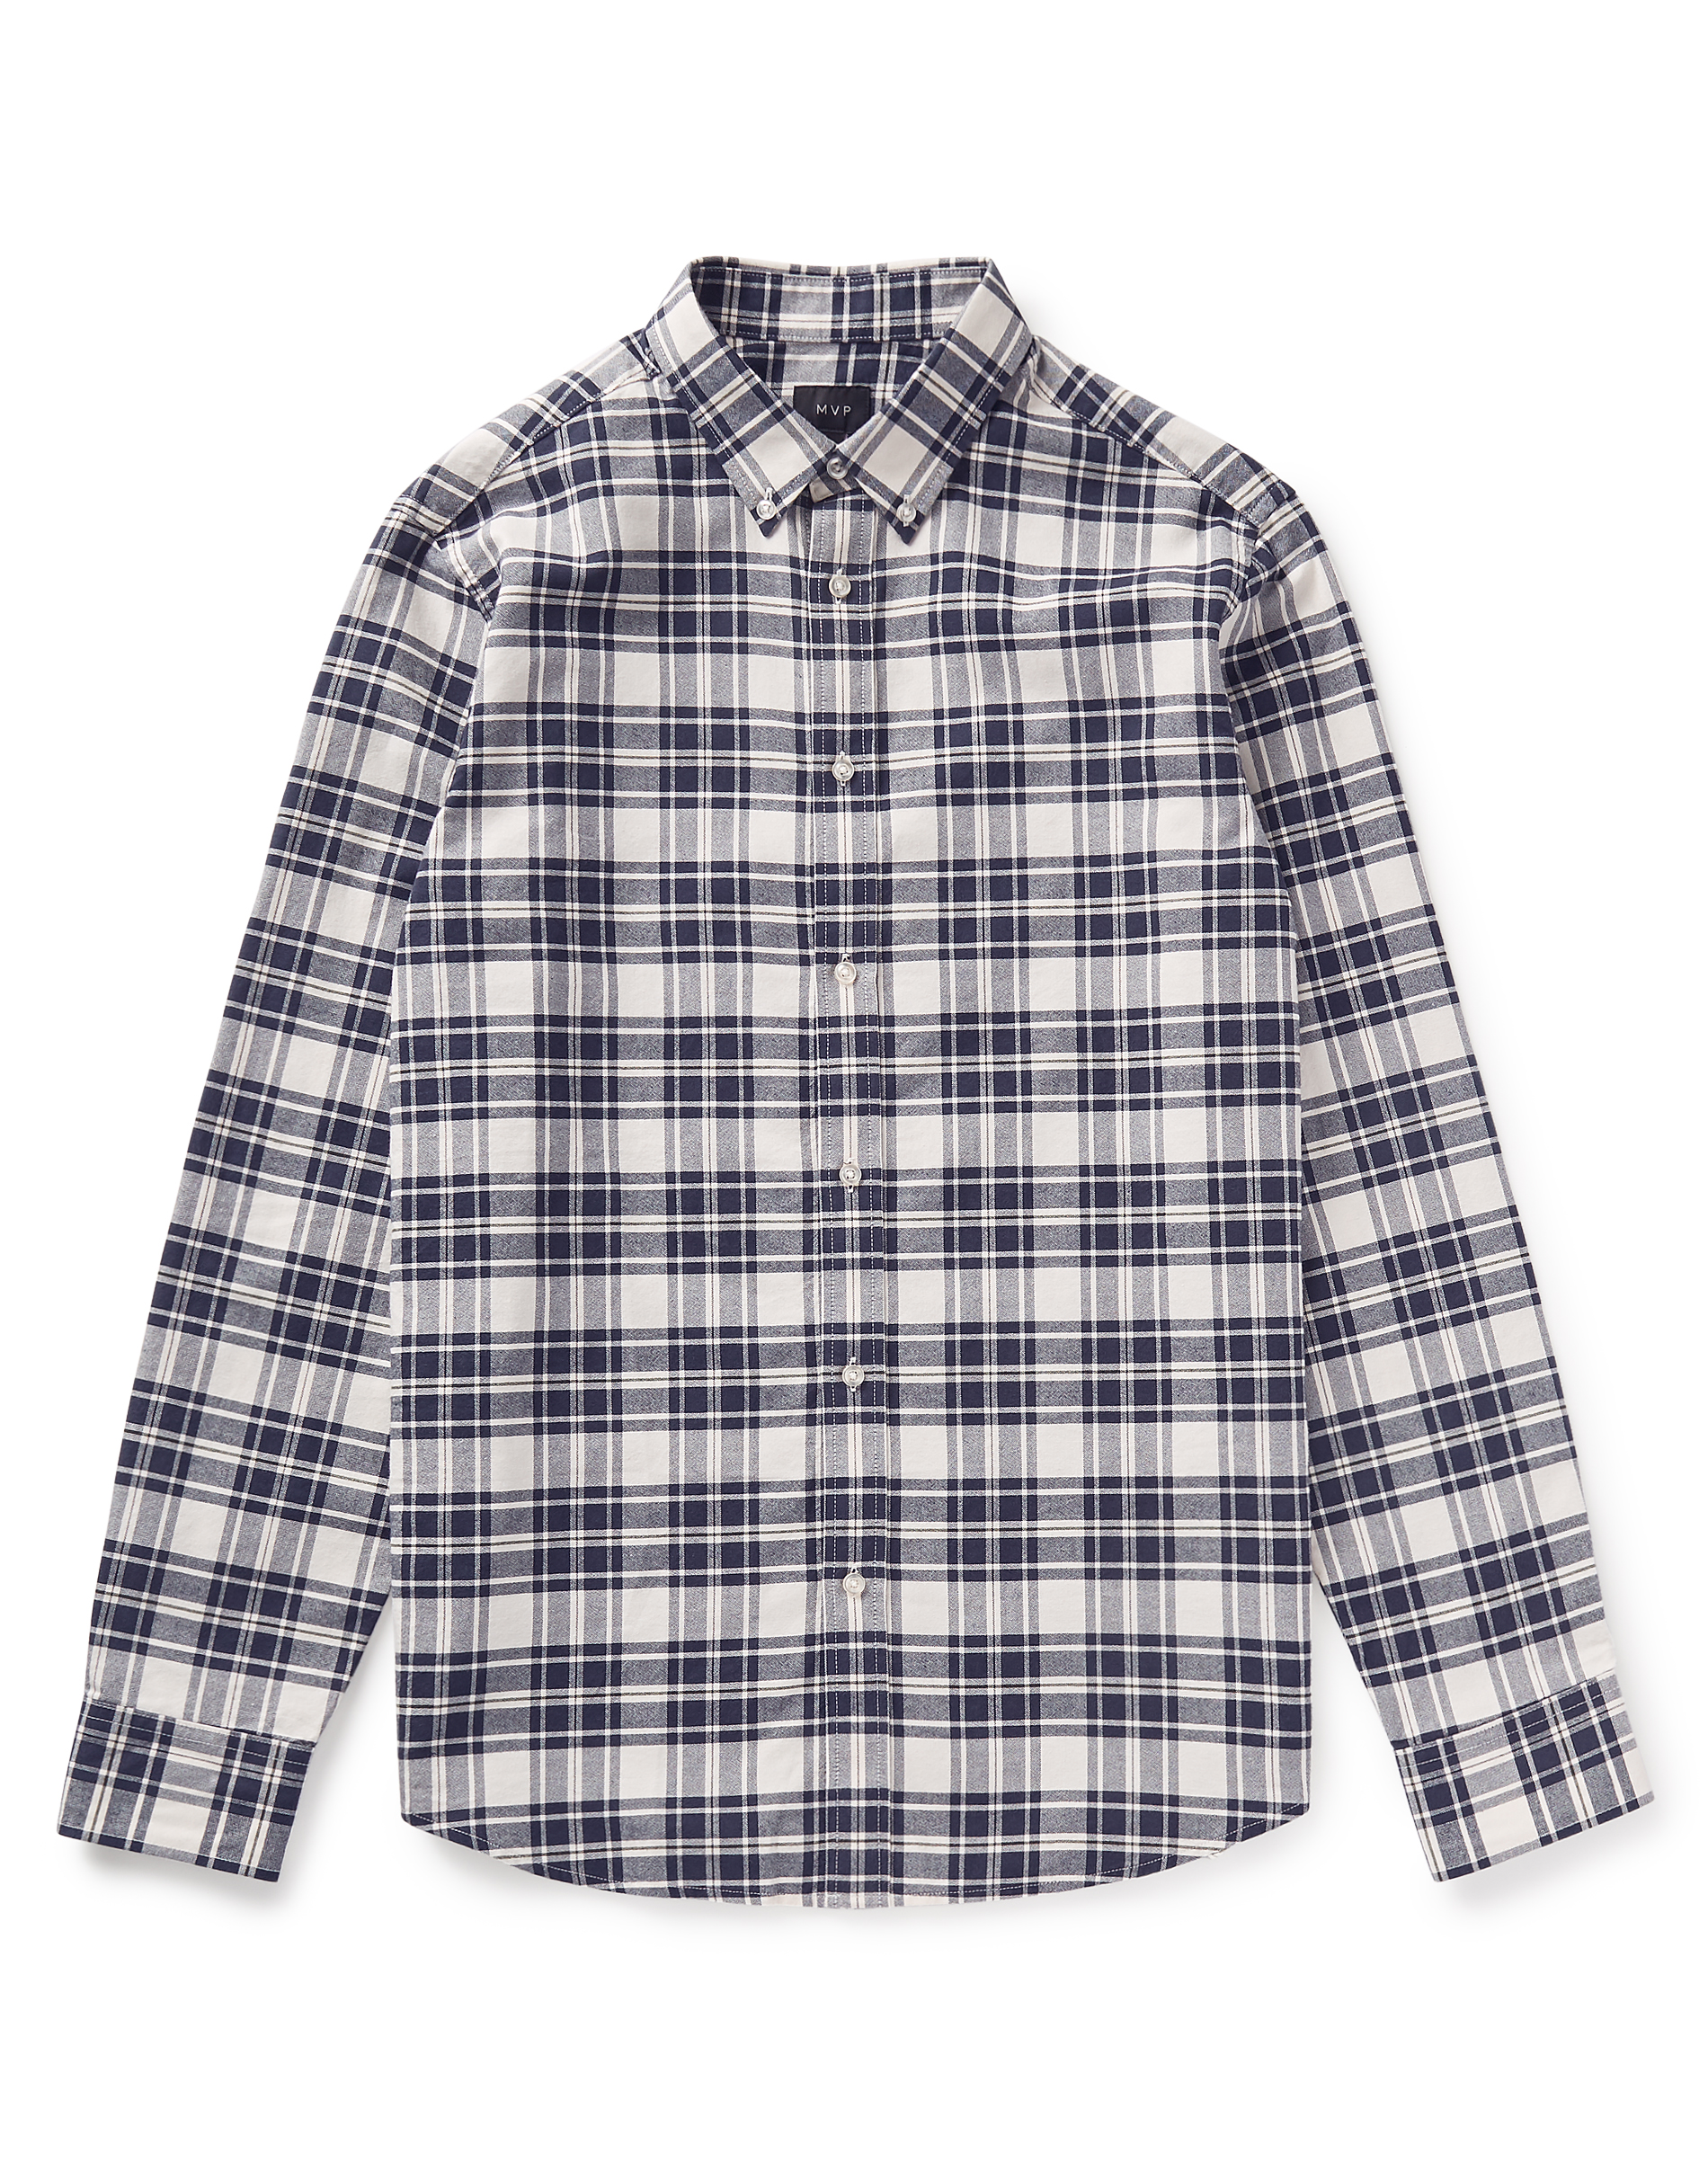 MVP Navy Check Baxendale Brushed Cotton Oxford Check Shirt